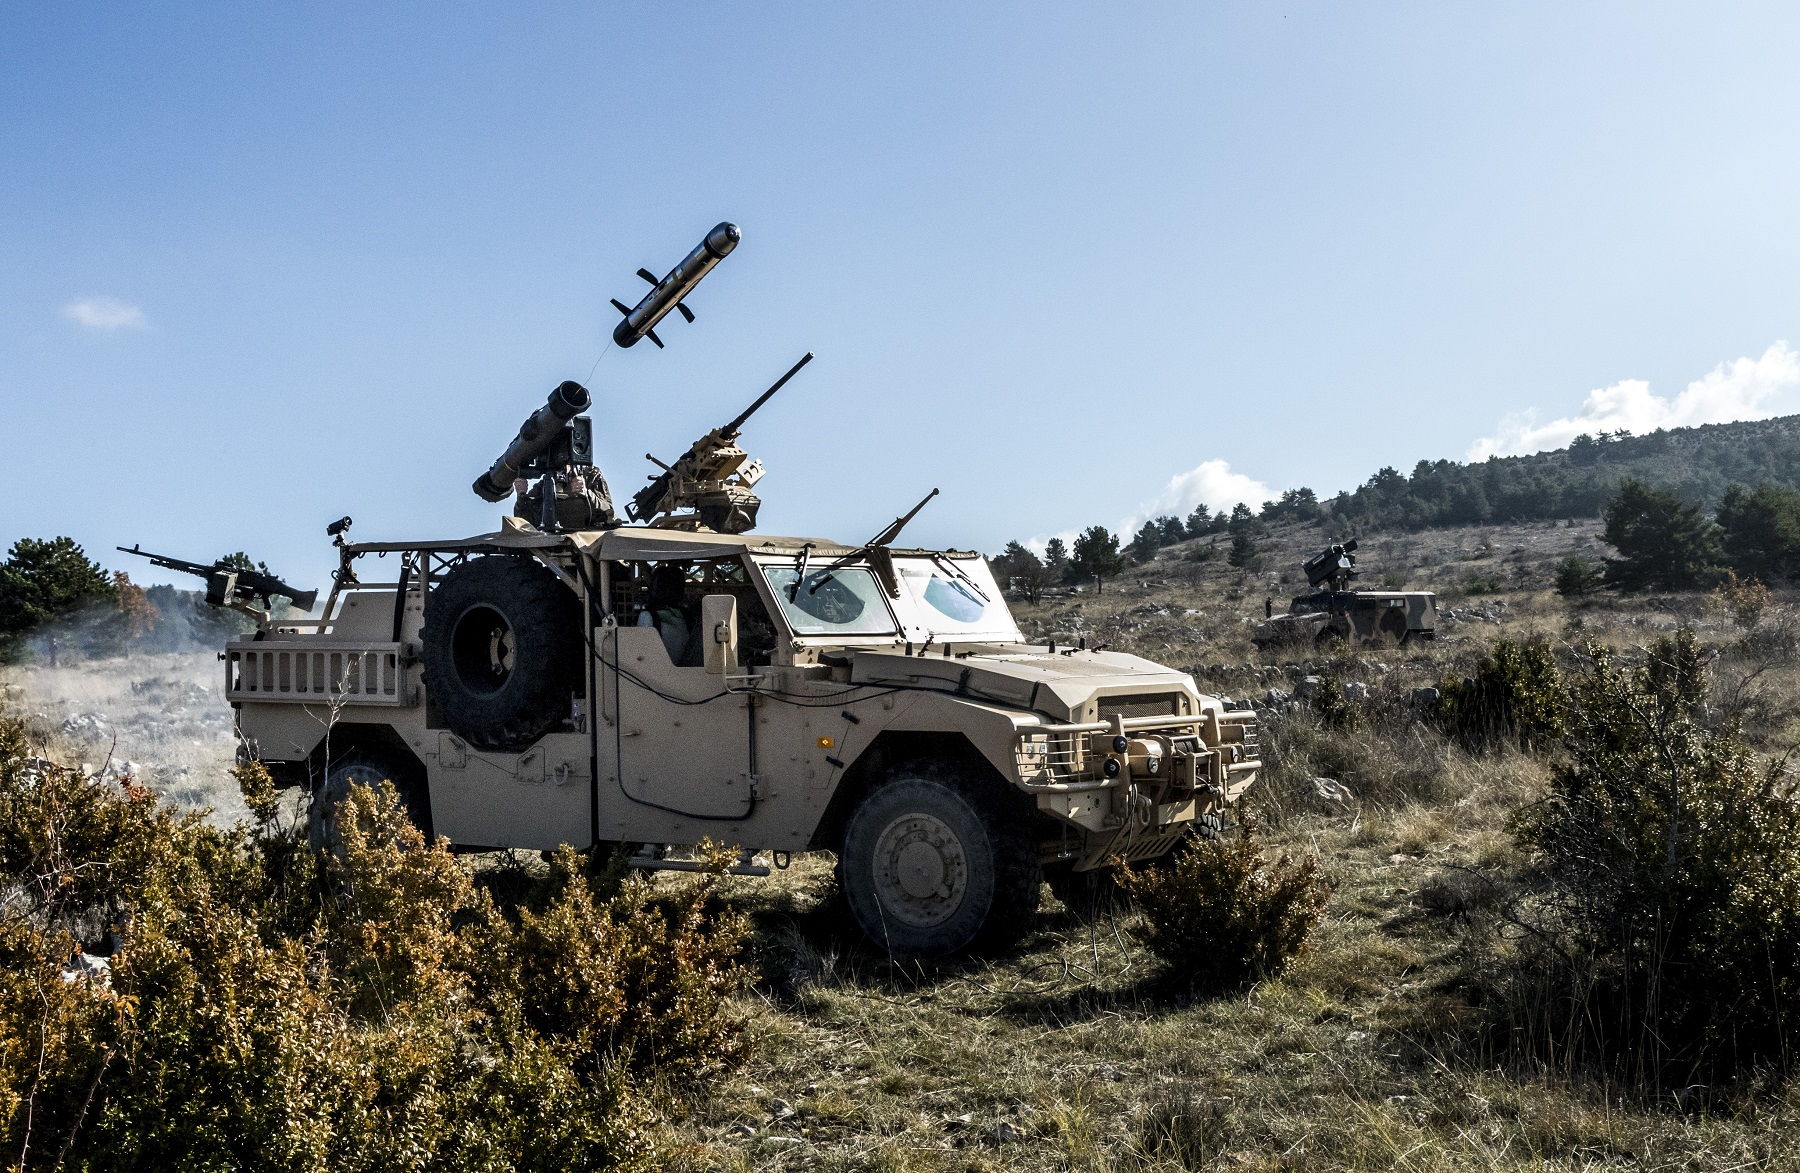 First Firing of MBDA MMP Anti-Tank Guided Missile from ARQUUS Sabre Special Forces Vehicle